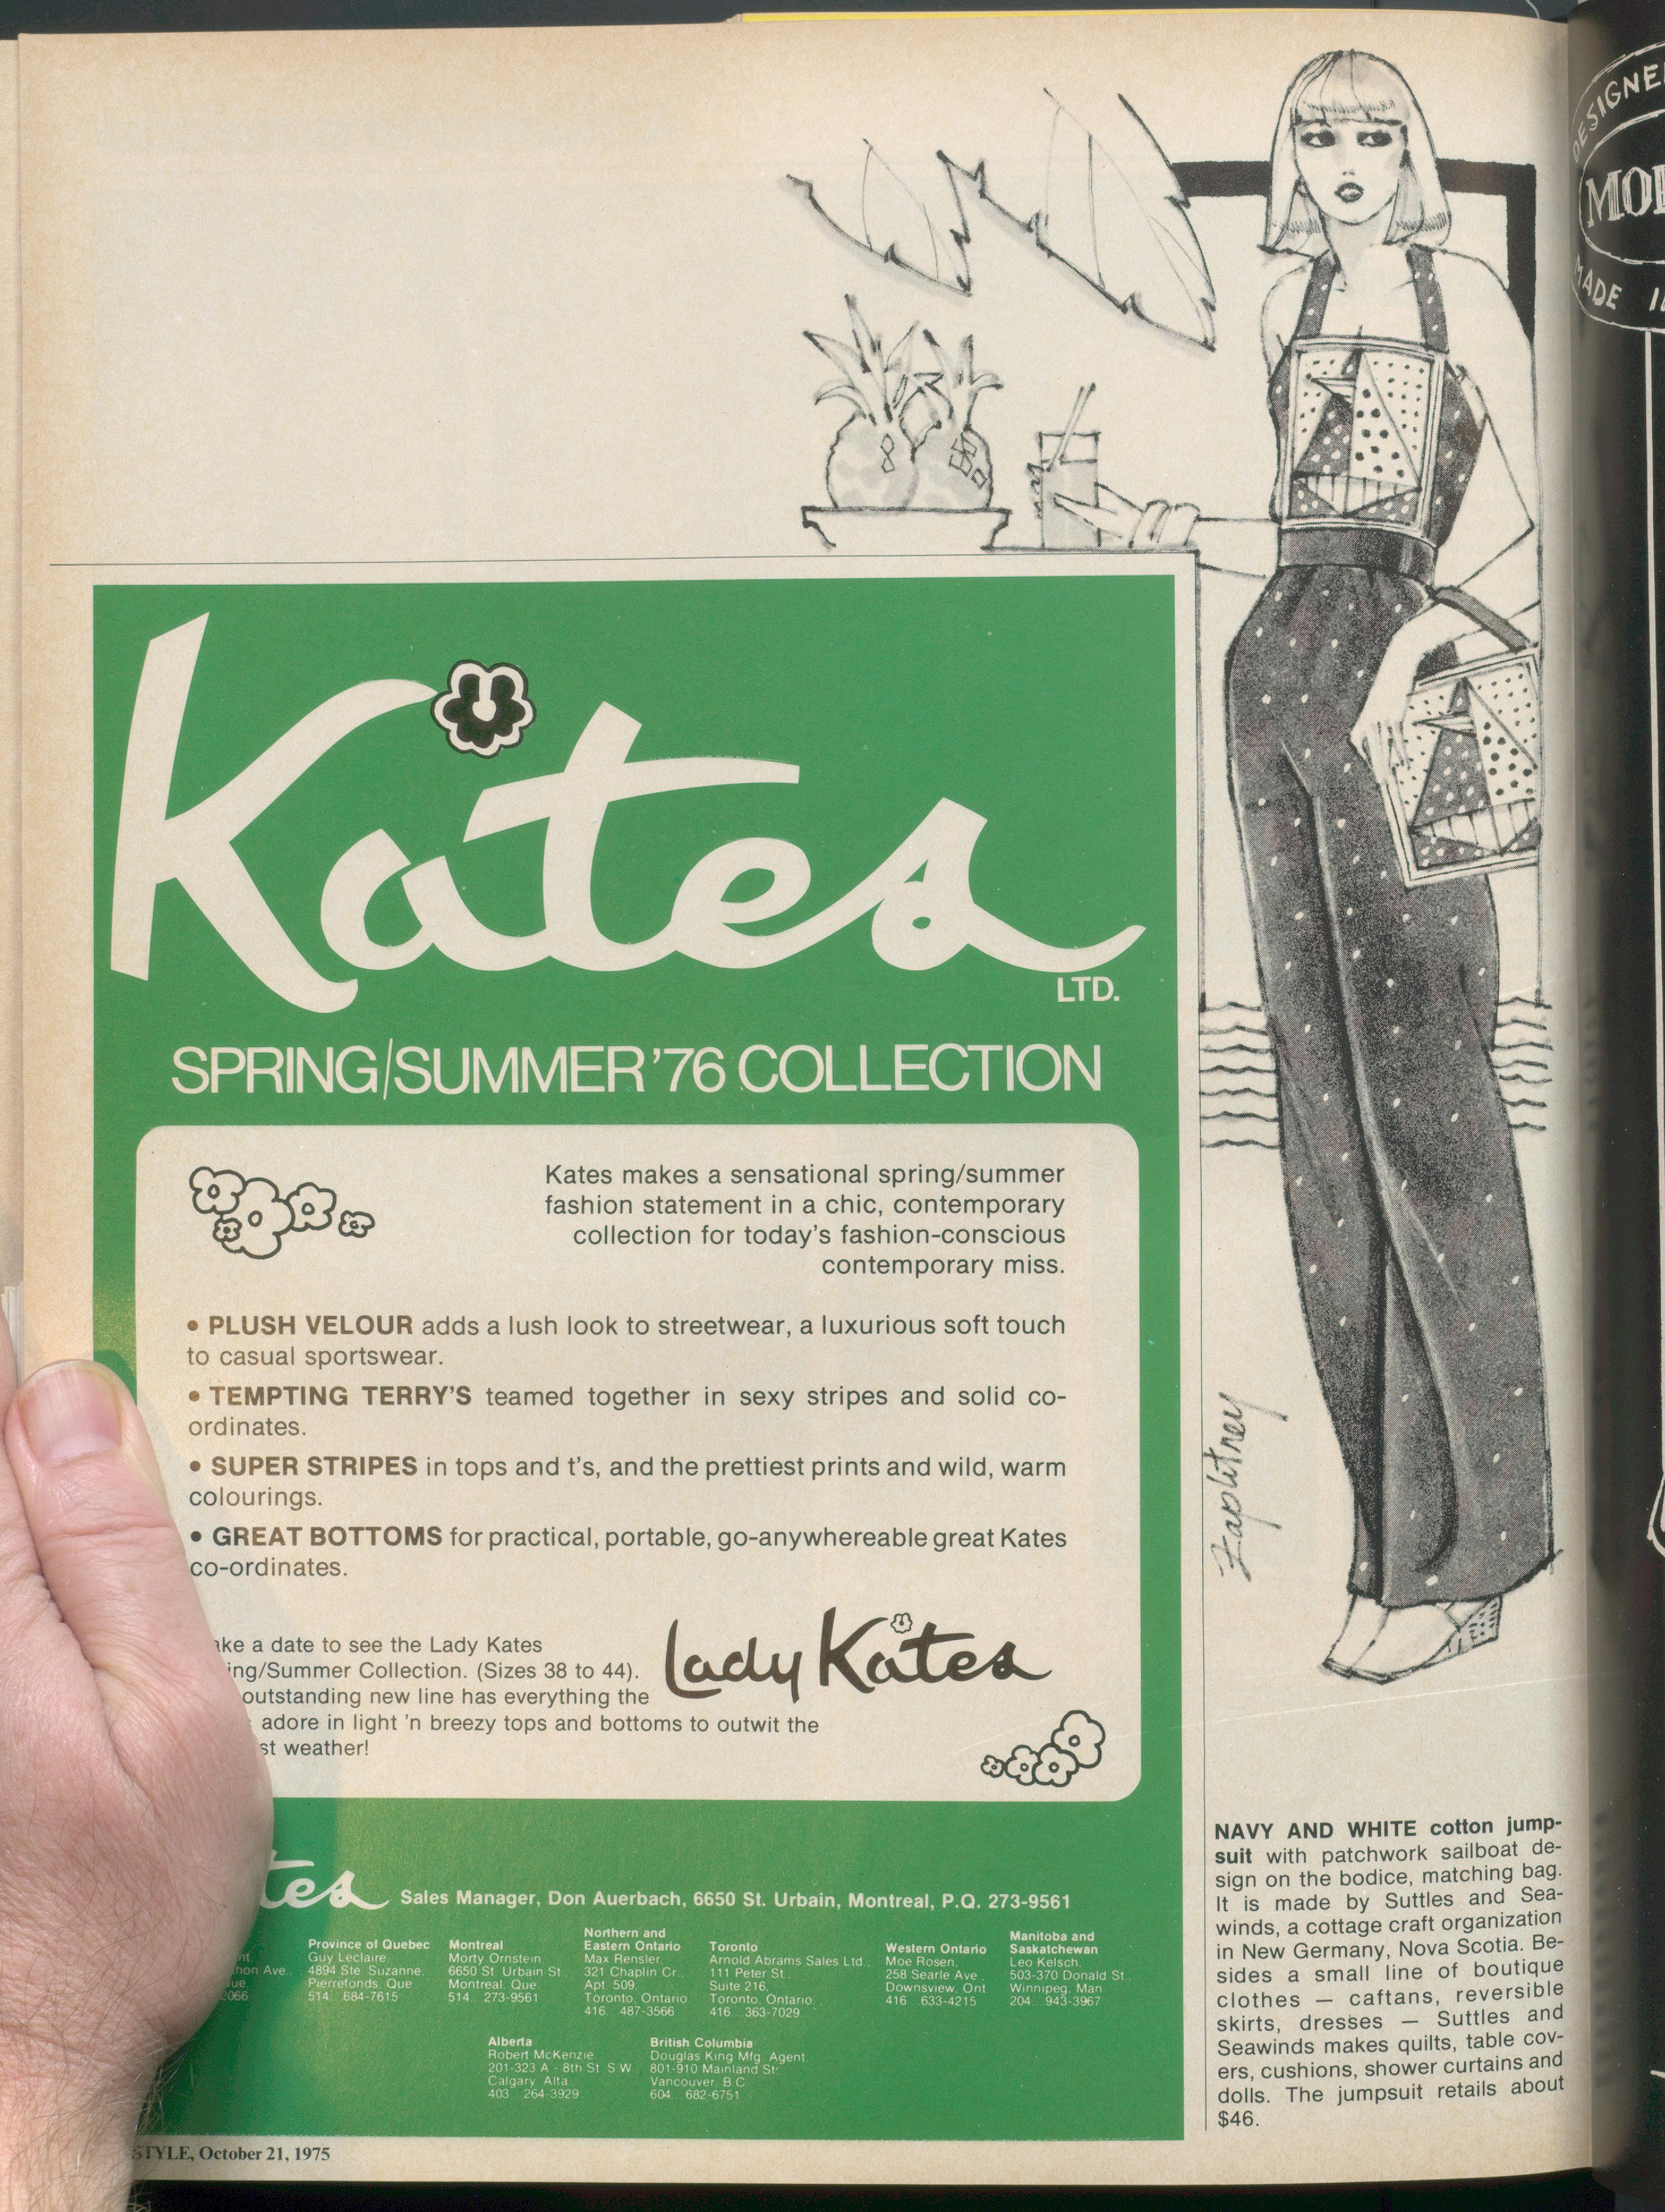 SUTTLES AND SEAWINDS STYLE OCTOBER 1975